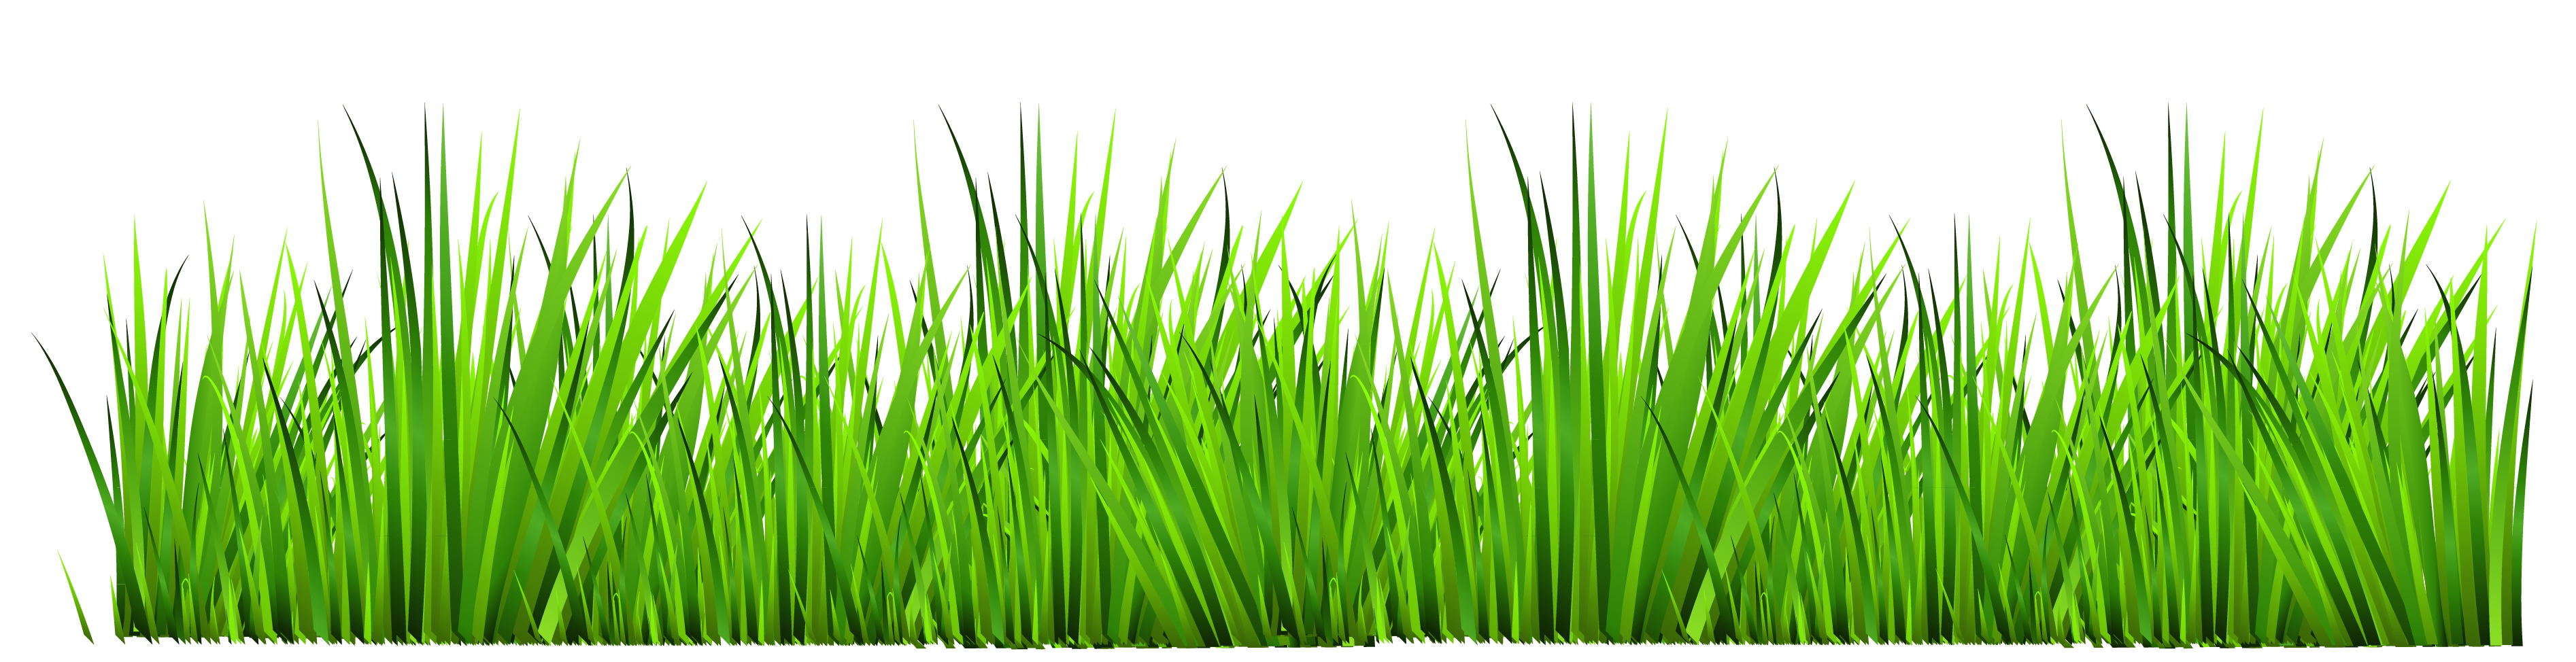 Grass clip art border clipart panda free clipart images for Best grasses for borders